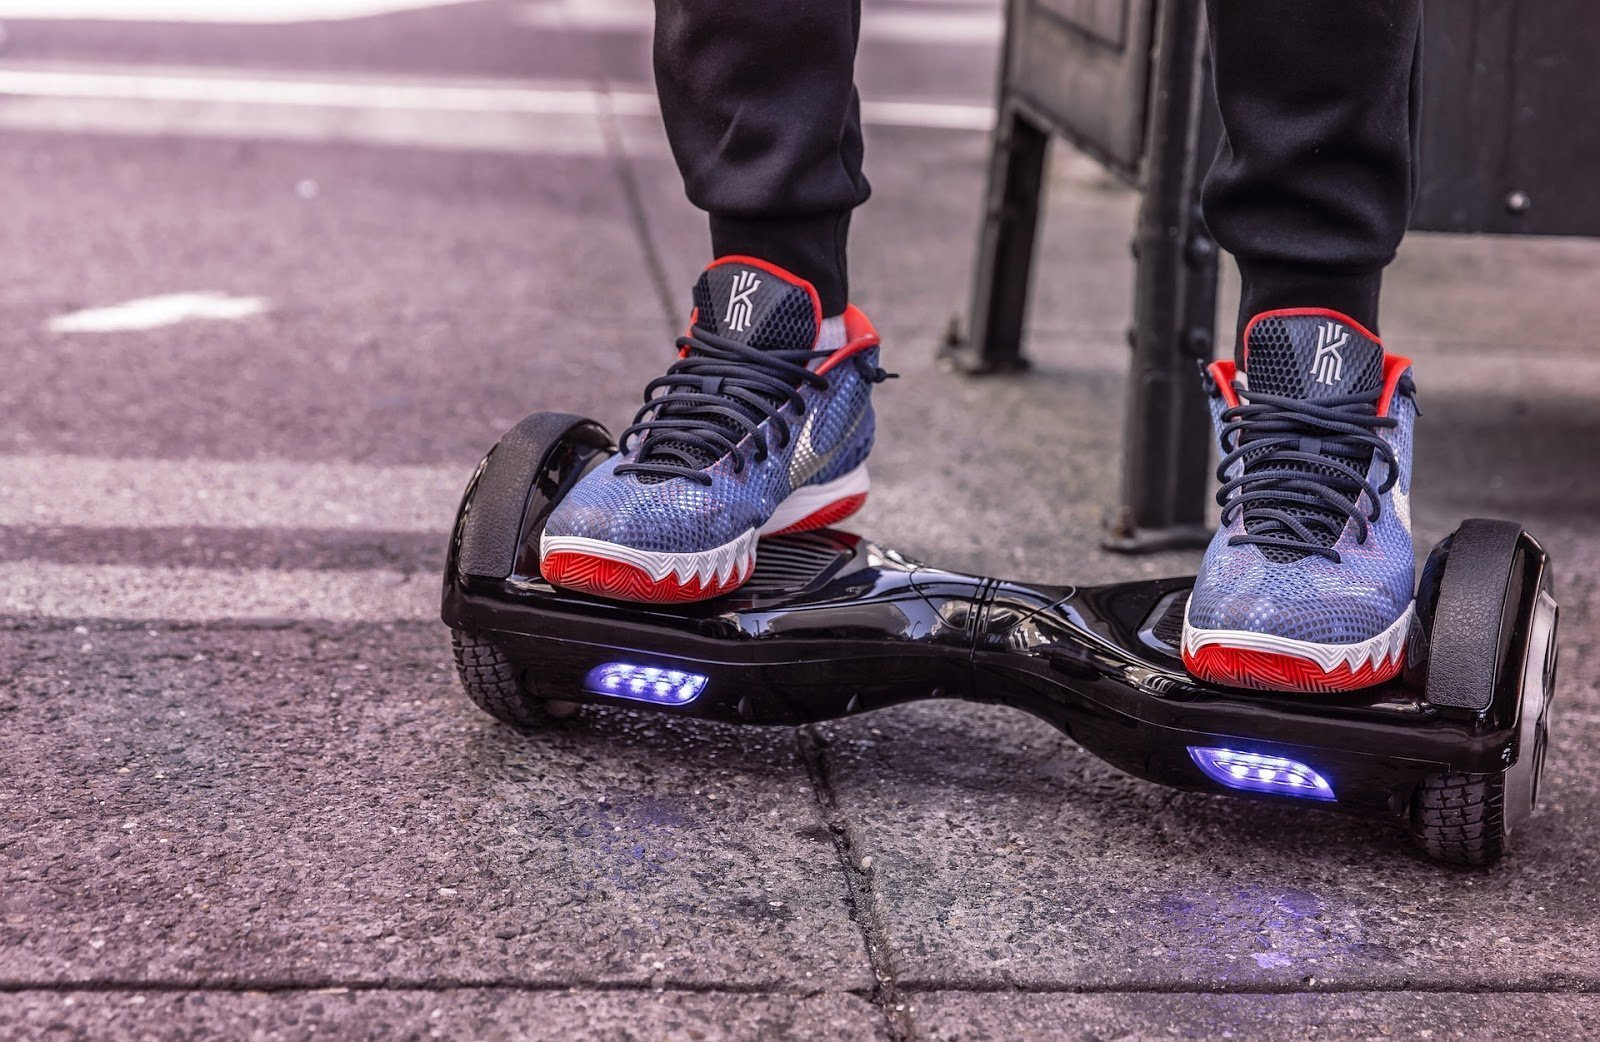 Top 9 Hoverboard Safety Tips and Precautions